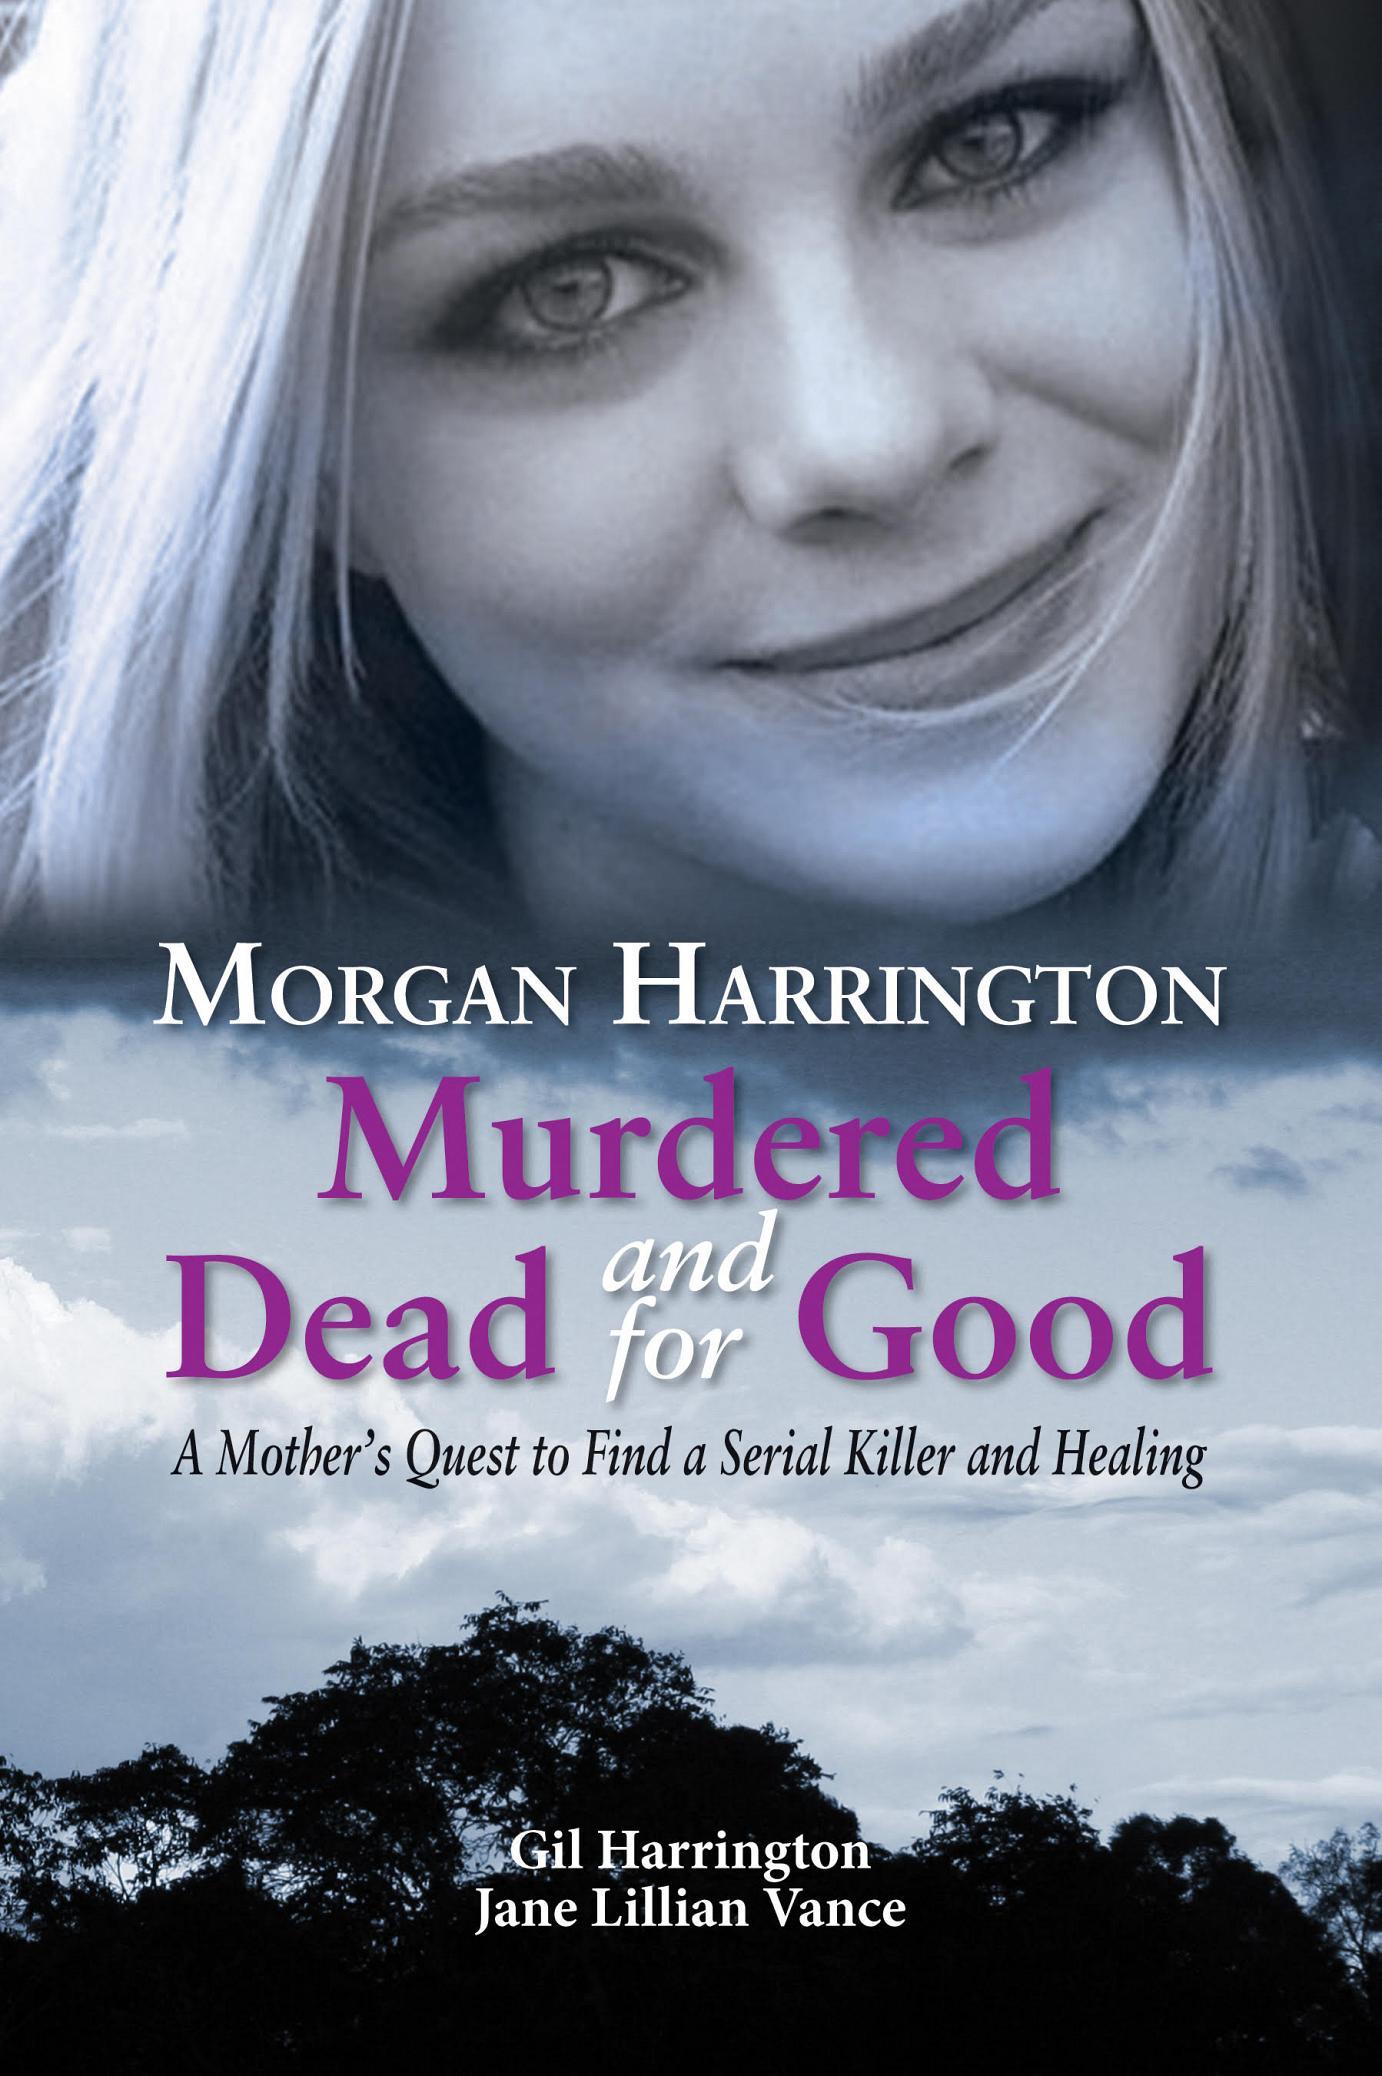 Help Save The Next Girl Morgan Harrington Murdered And